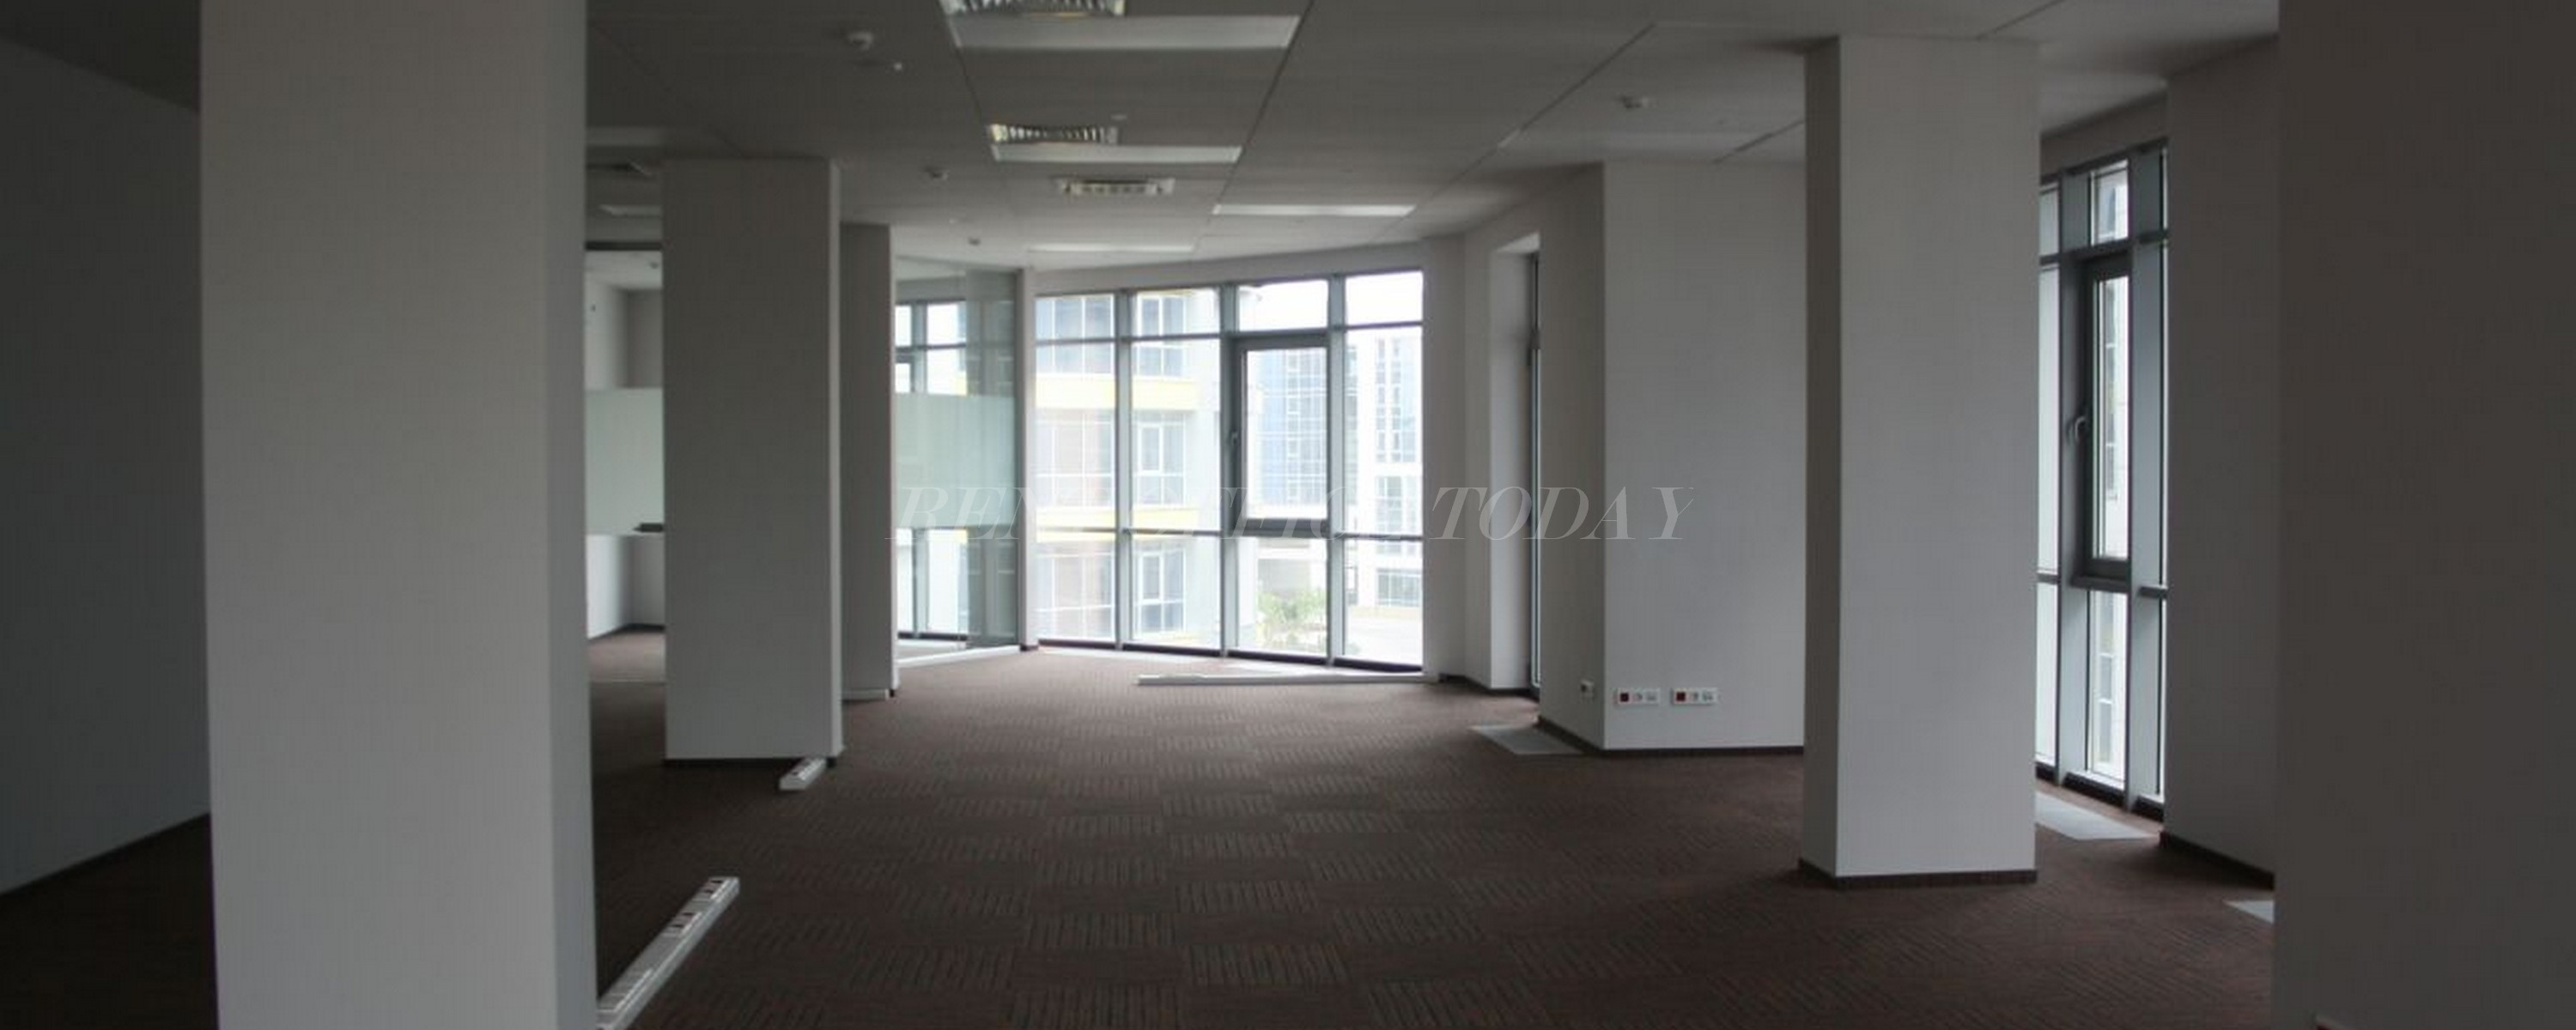 office rent poklonka place-23